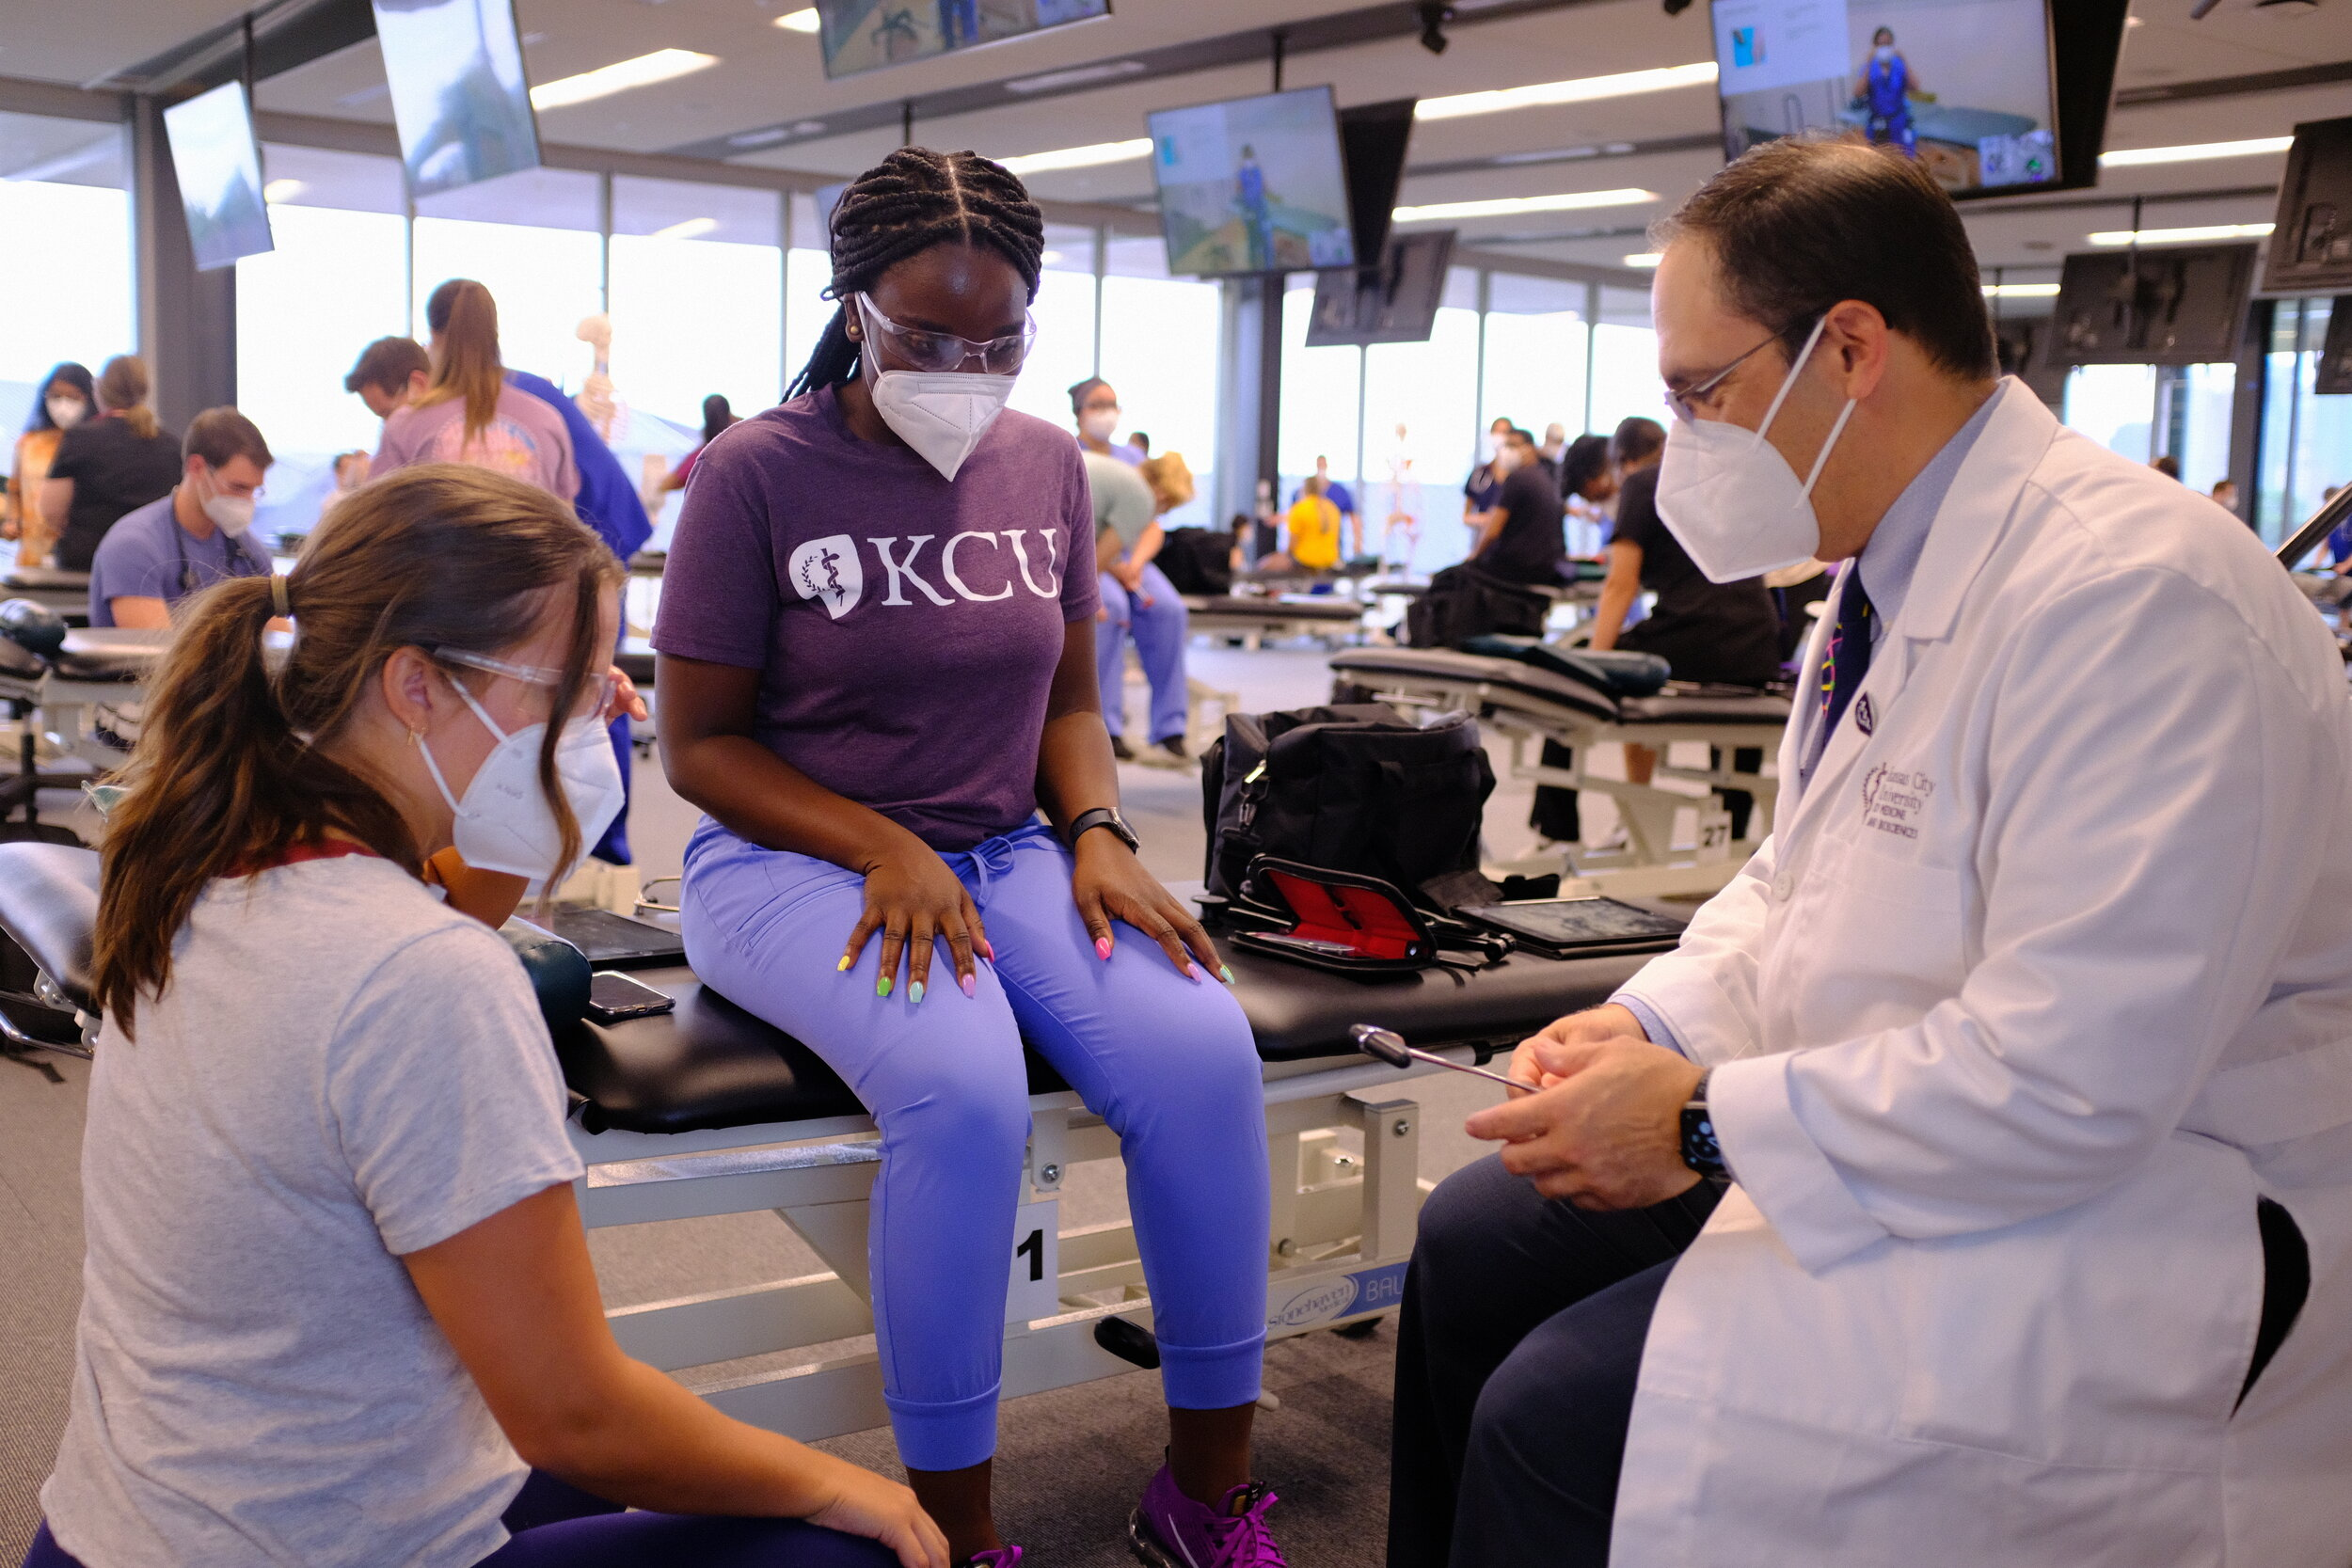 Darren D'Agostino, executive dean of Kansas City University, works with first-year medical students on the first day of classes July 29.  Courtesy of Kansas City University